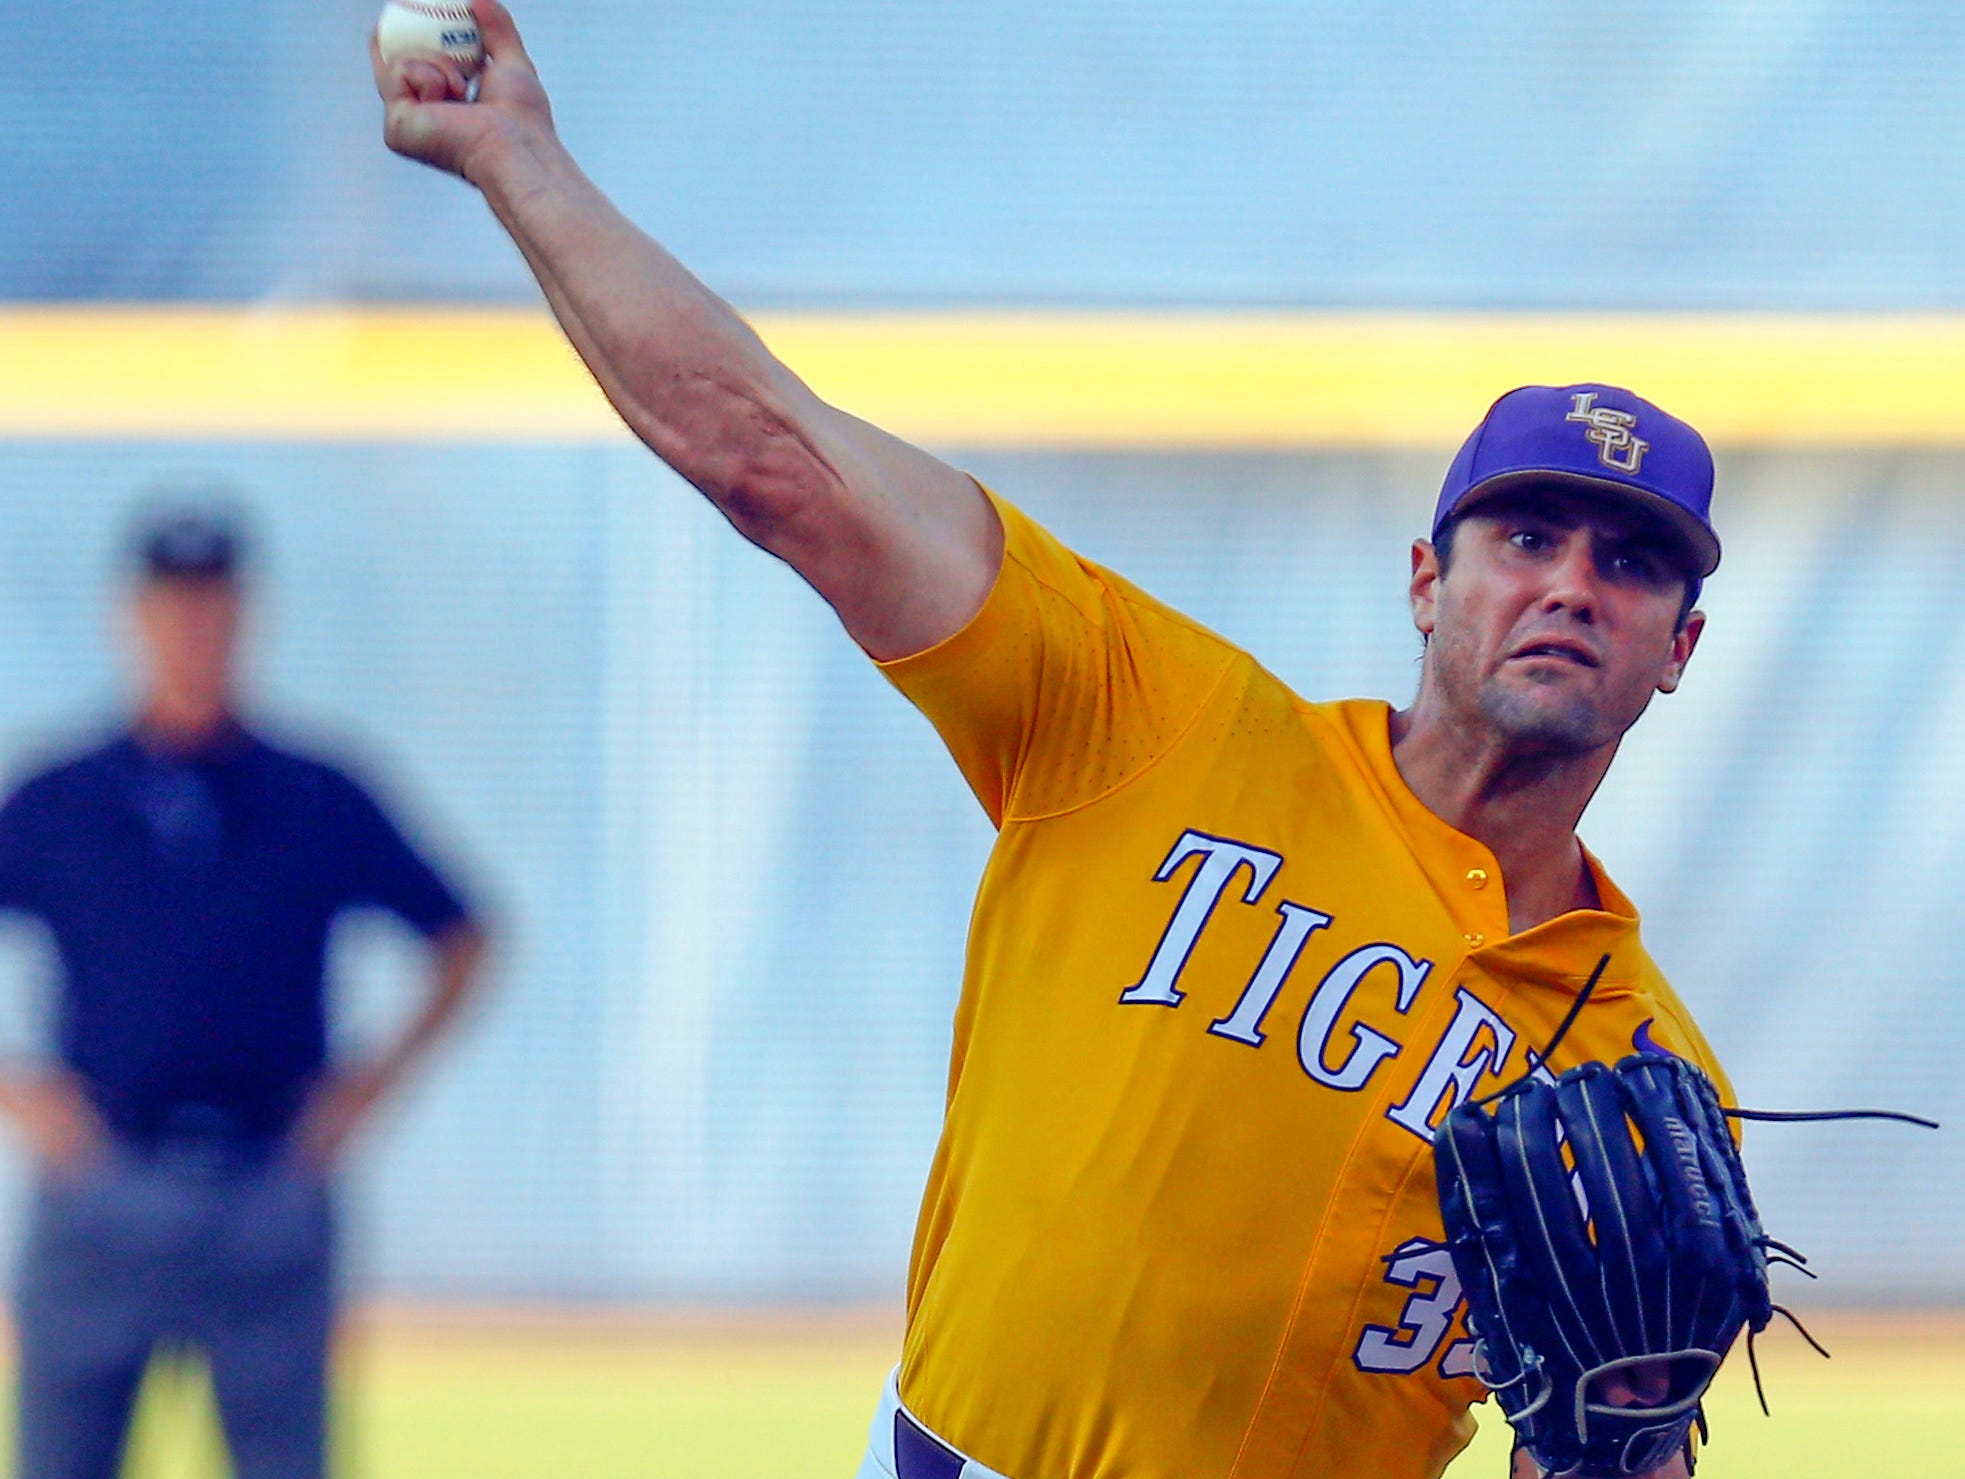 Mainieri Mercy! LSU 10-run rules Miss. St. just 2 nights after zeroes in 14 of 17 innings